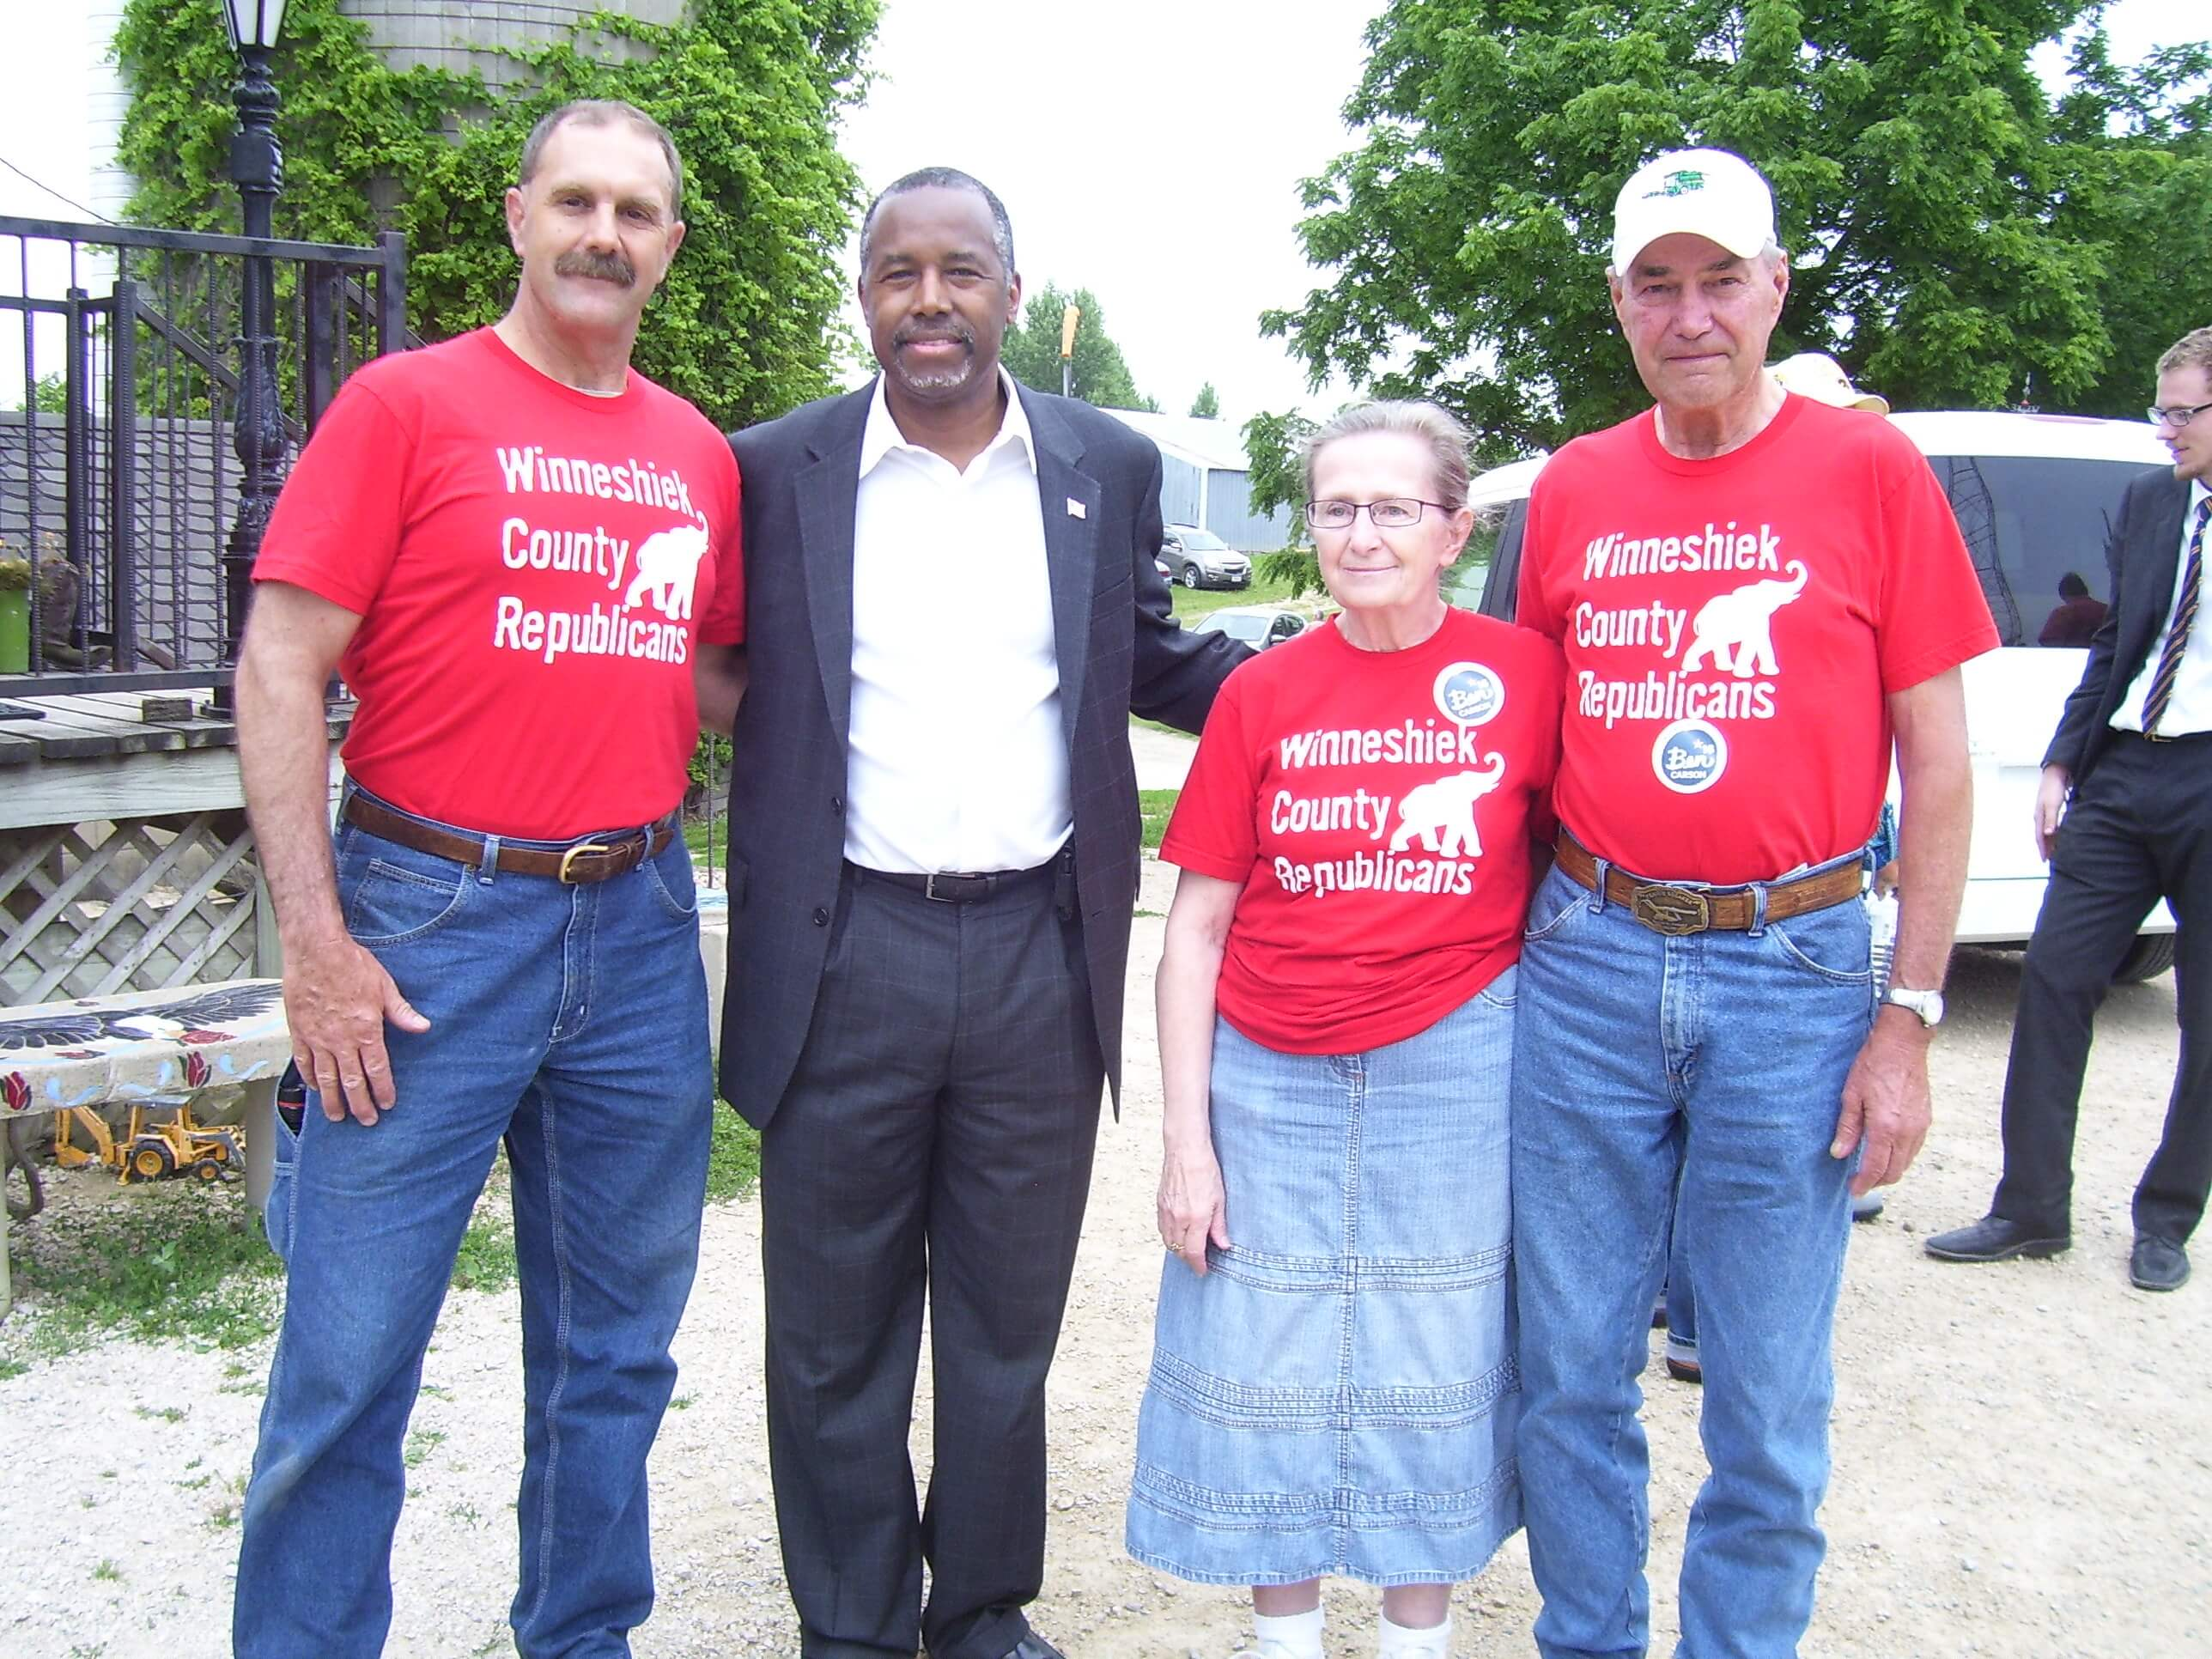 Thomas Hansen with other republicans and Ben Carson